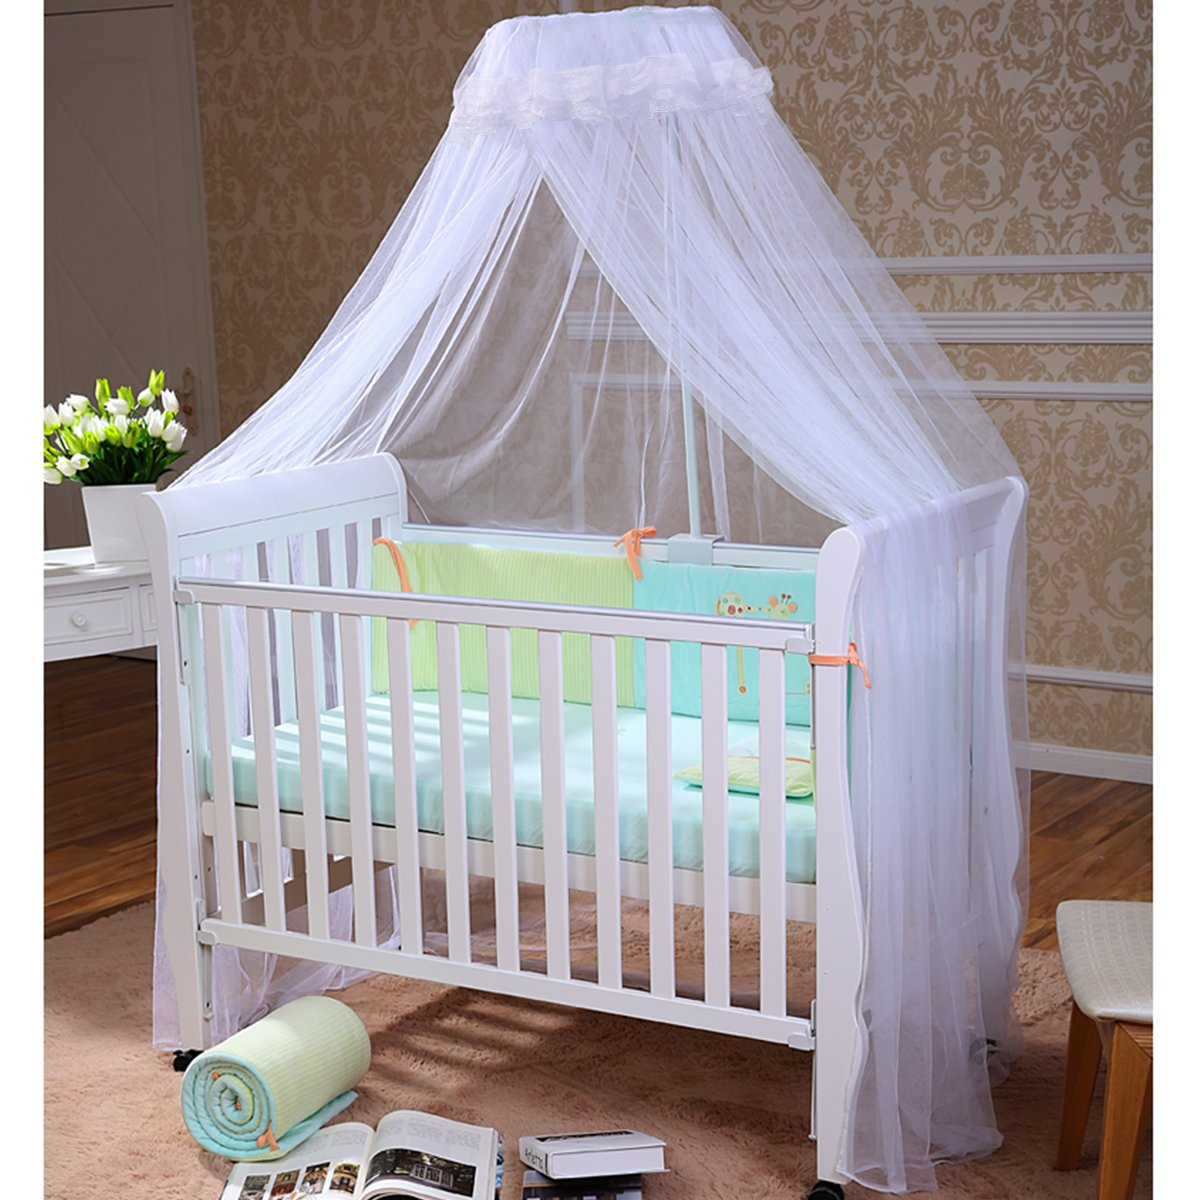 FOXNOVO Mosquito Net,Baby Canopy Bed Netting,High Quality by Foxnovo